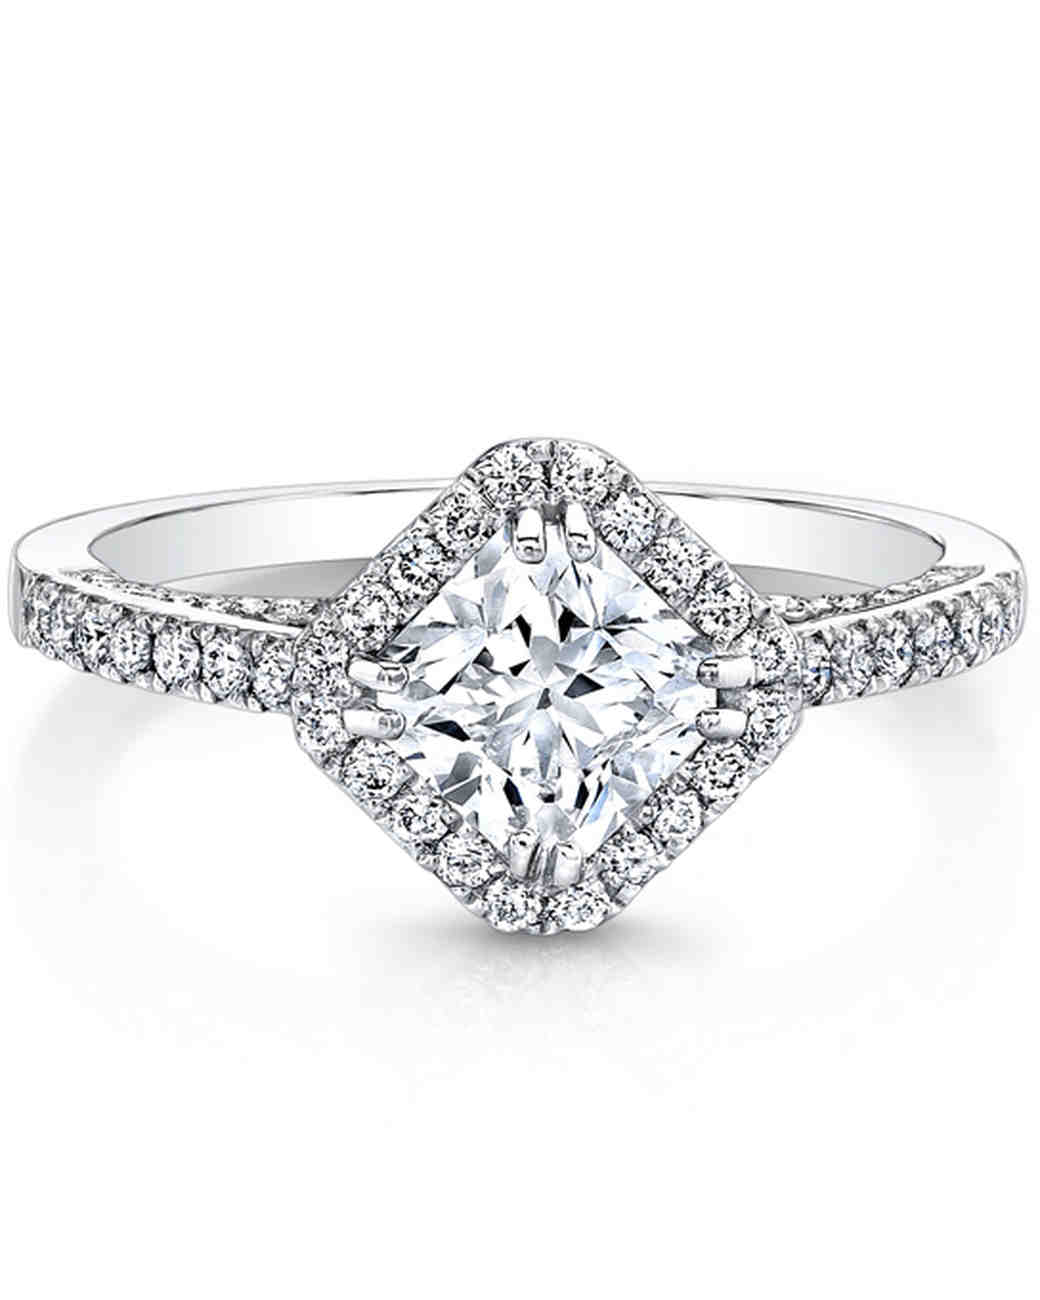 is brilliant and invite engagement you natalie designer browse intricate wedding in collection of large diamonds pin we our to a fall k detailing love rings diamond